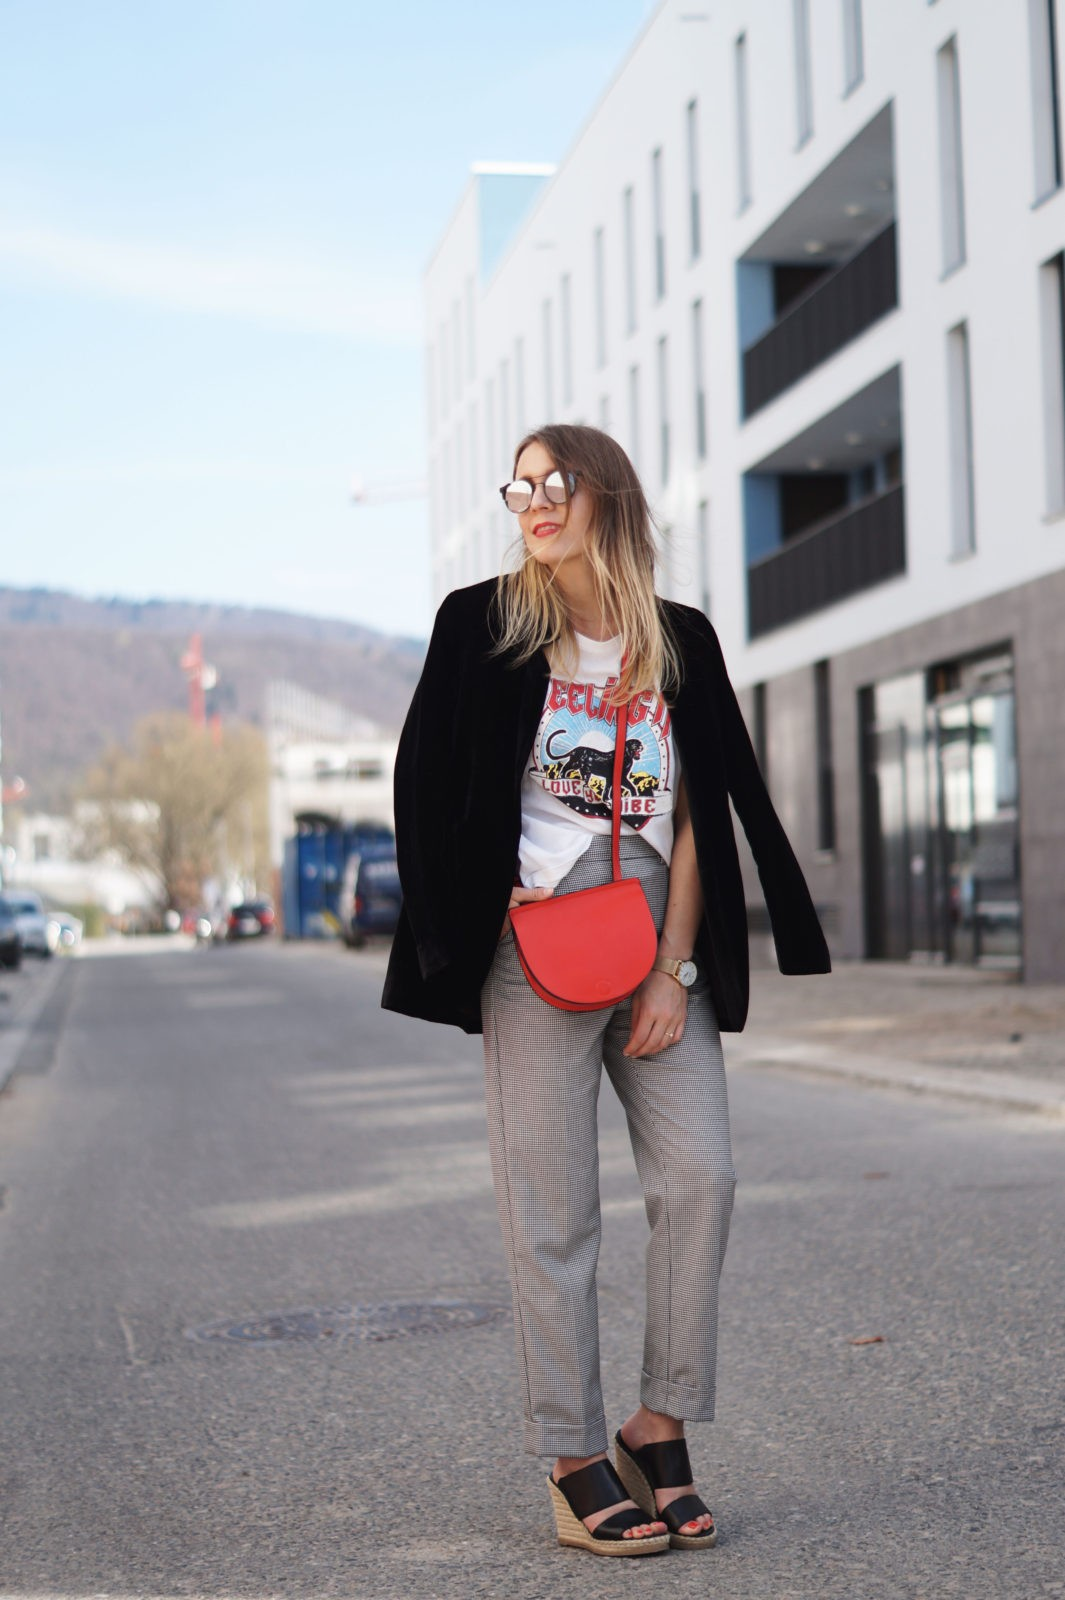 Slogan Shirt Pop of Red Outfit Fashionblogger Sariety Modeblog Heidelberg Bandshirt Karohose rote Tasche Mirrored Sunglasses